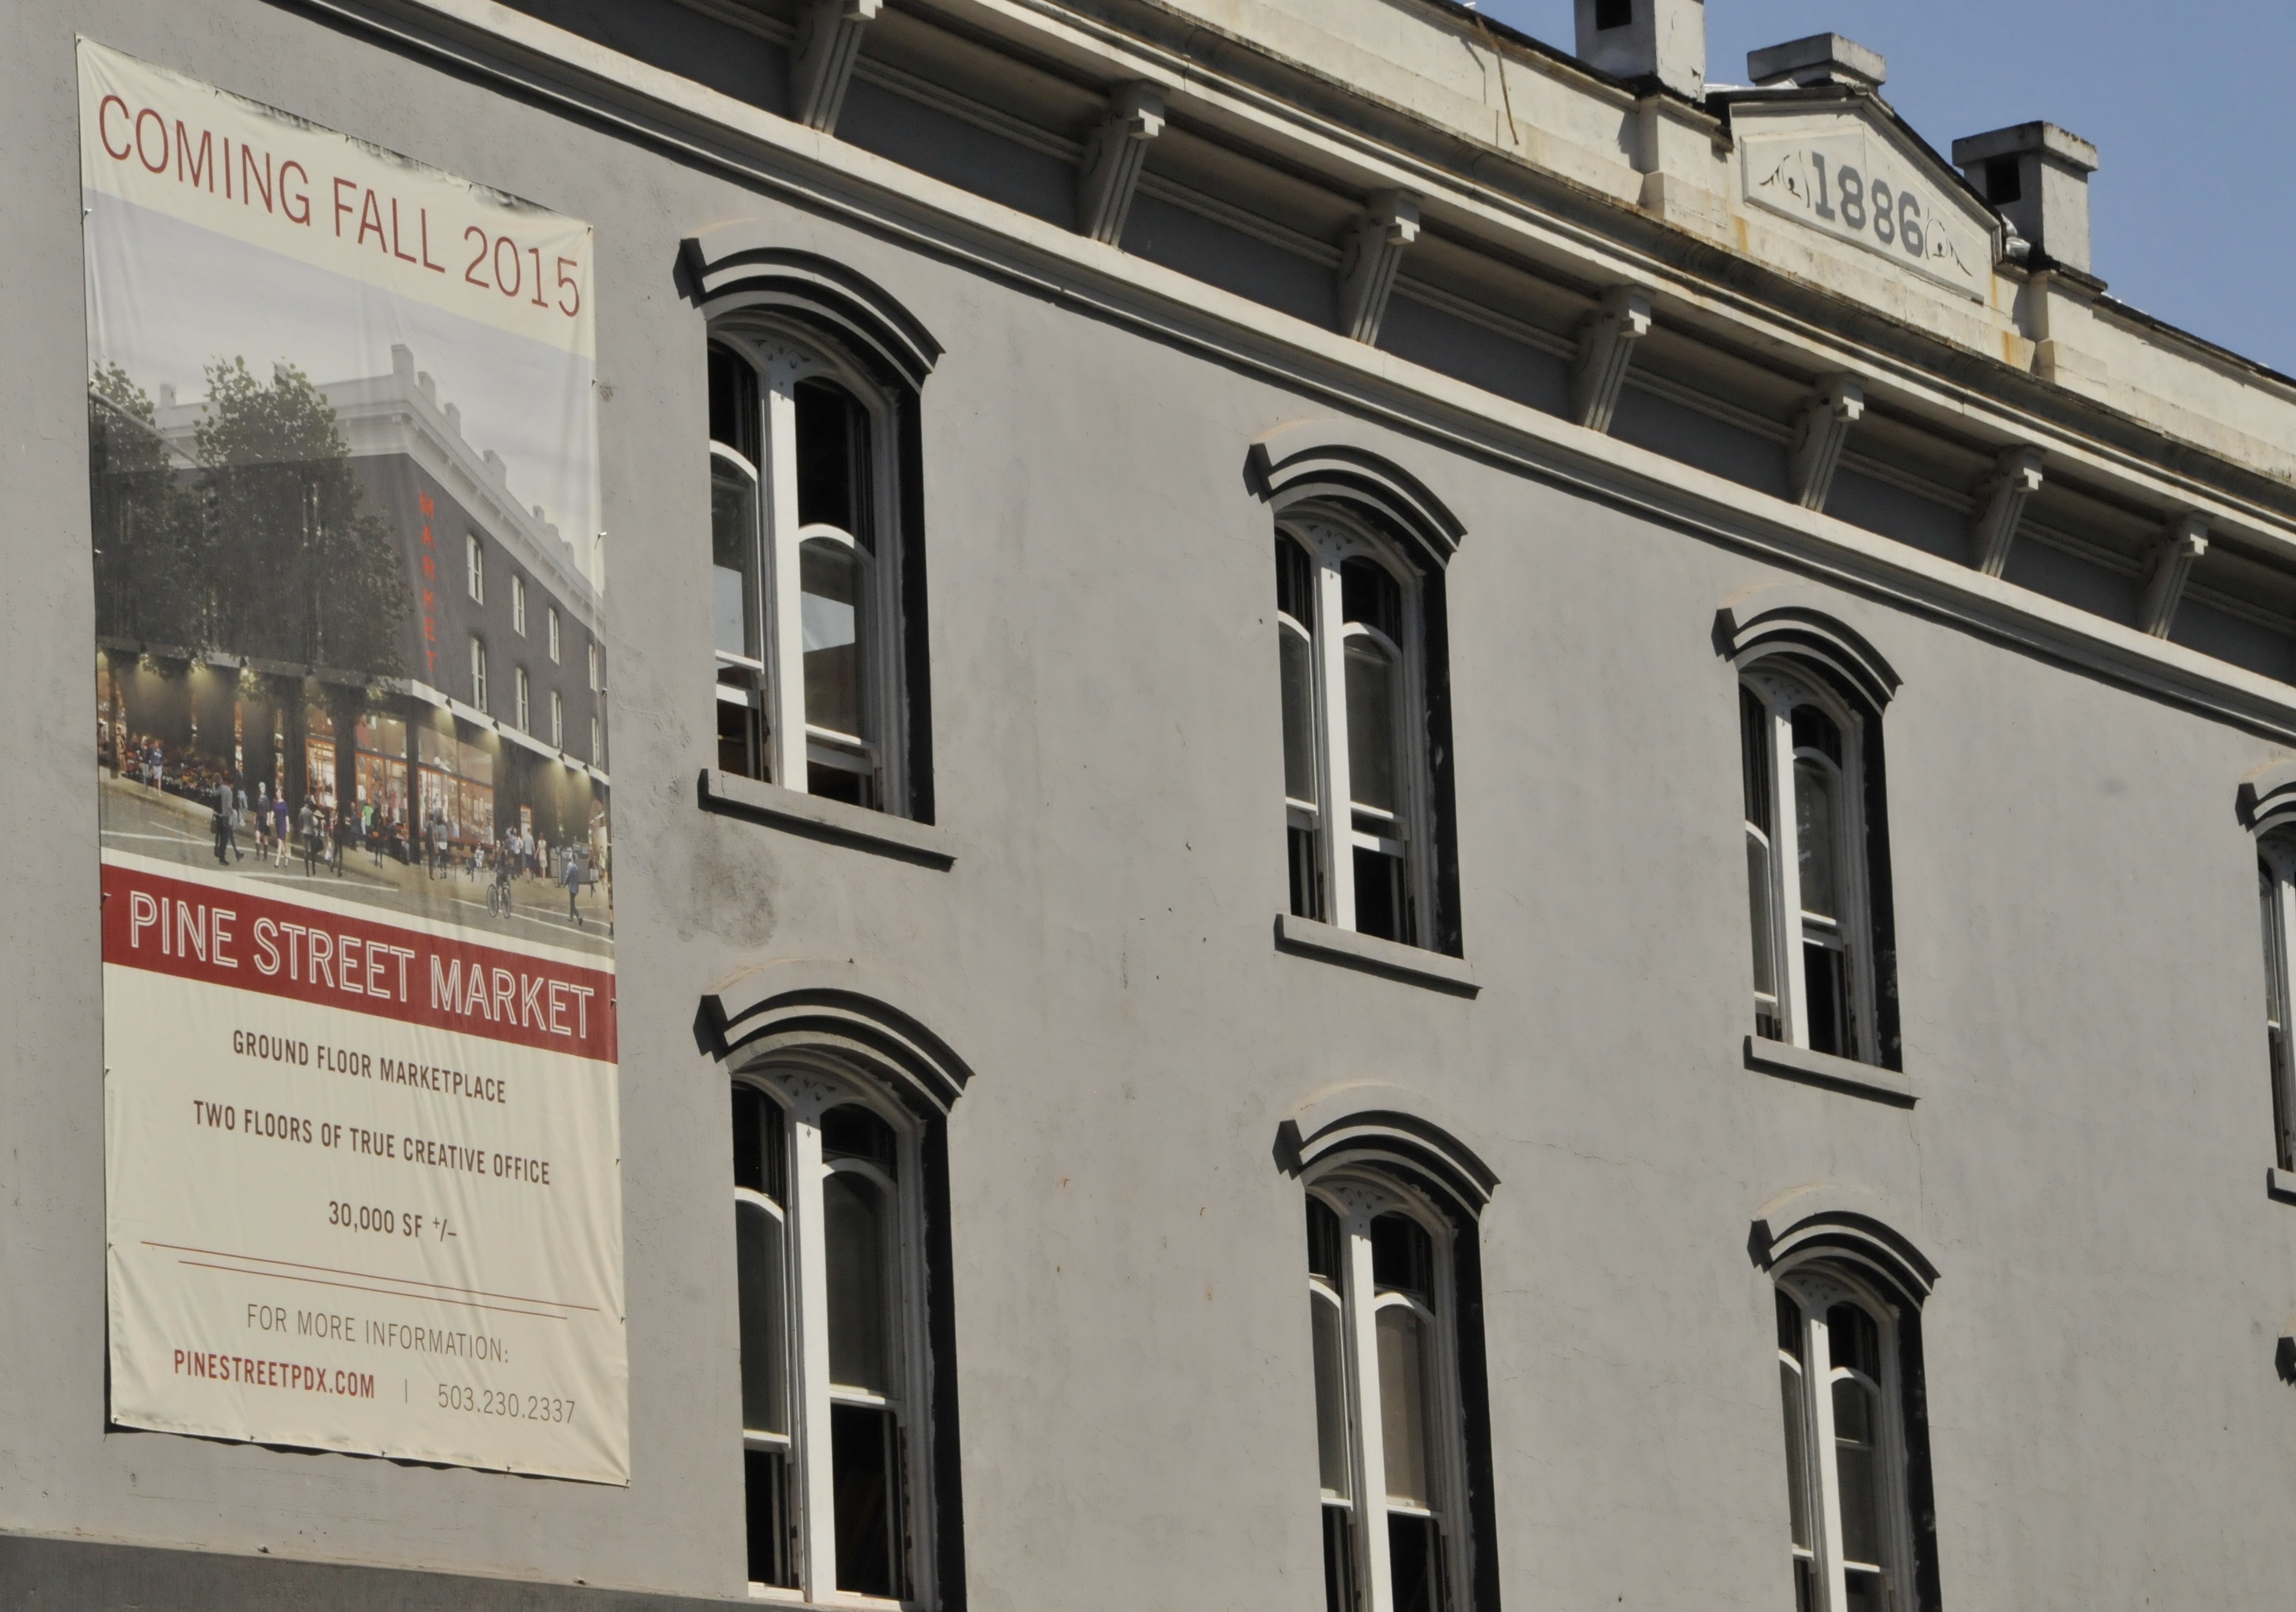 Pine Street Market coming to Downtown Portland this fall